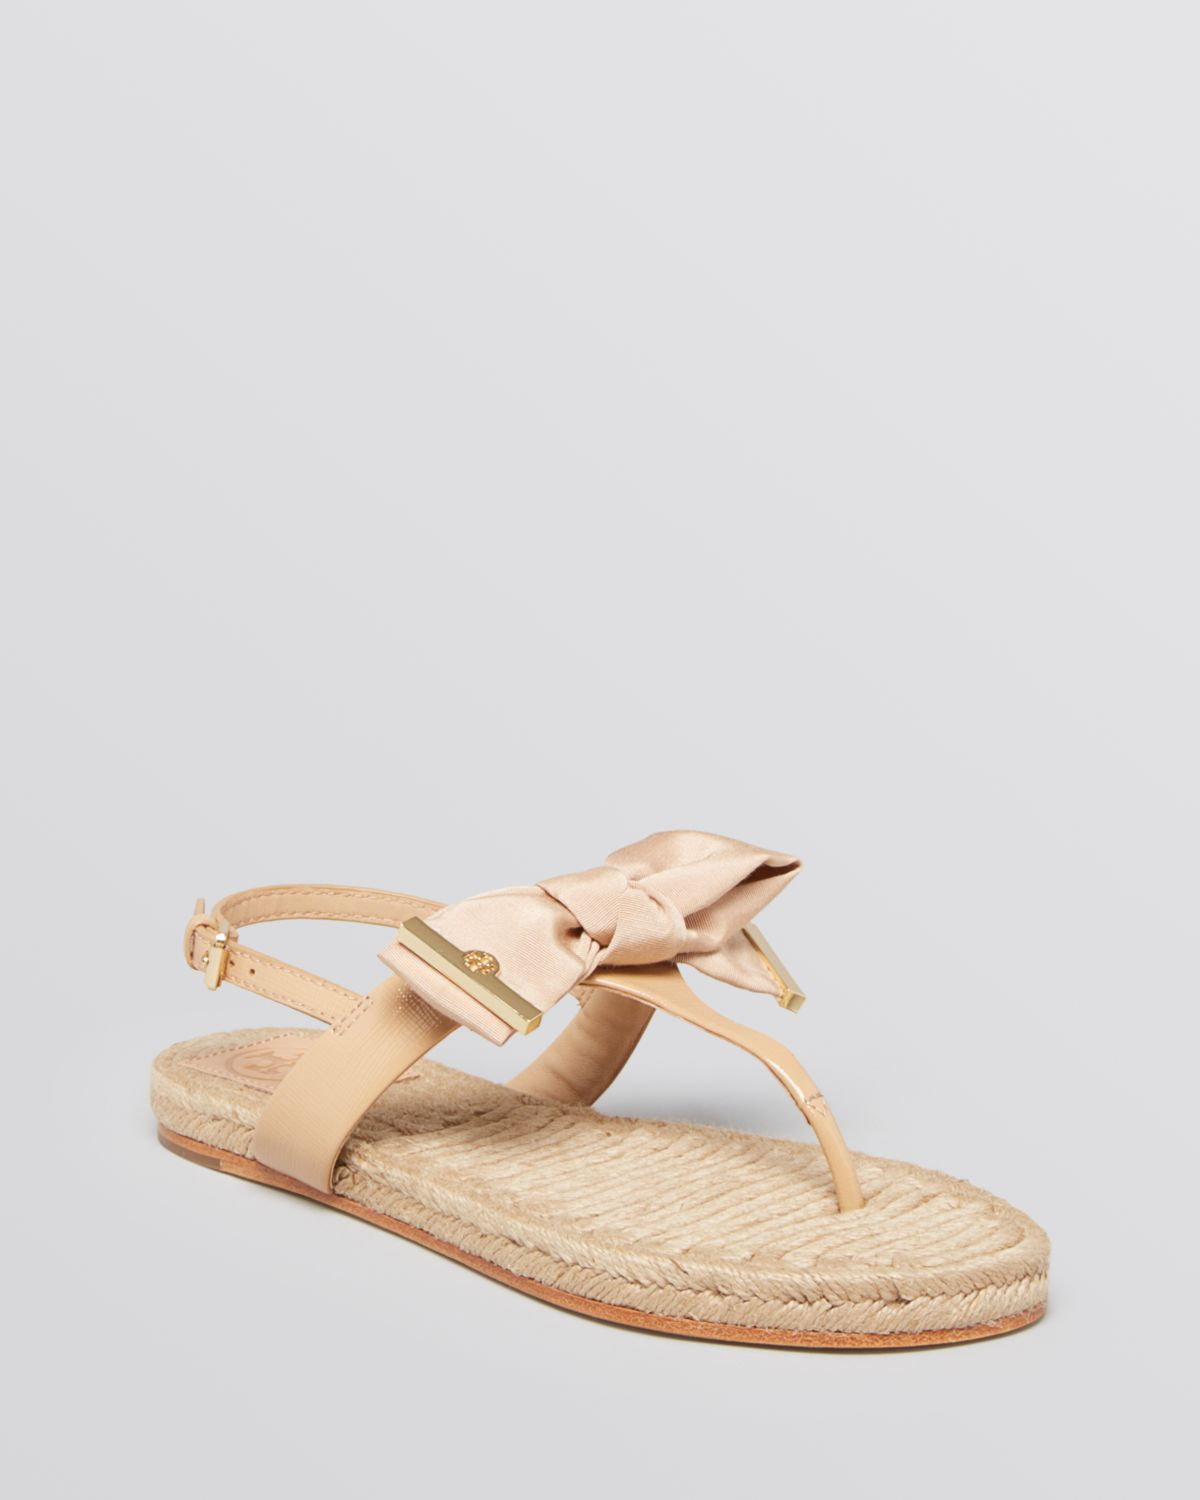 Lyst Tory Burch Flat Thong Sandals Penny Bow In Pink